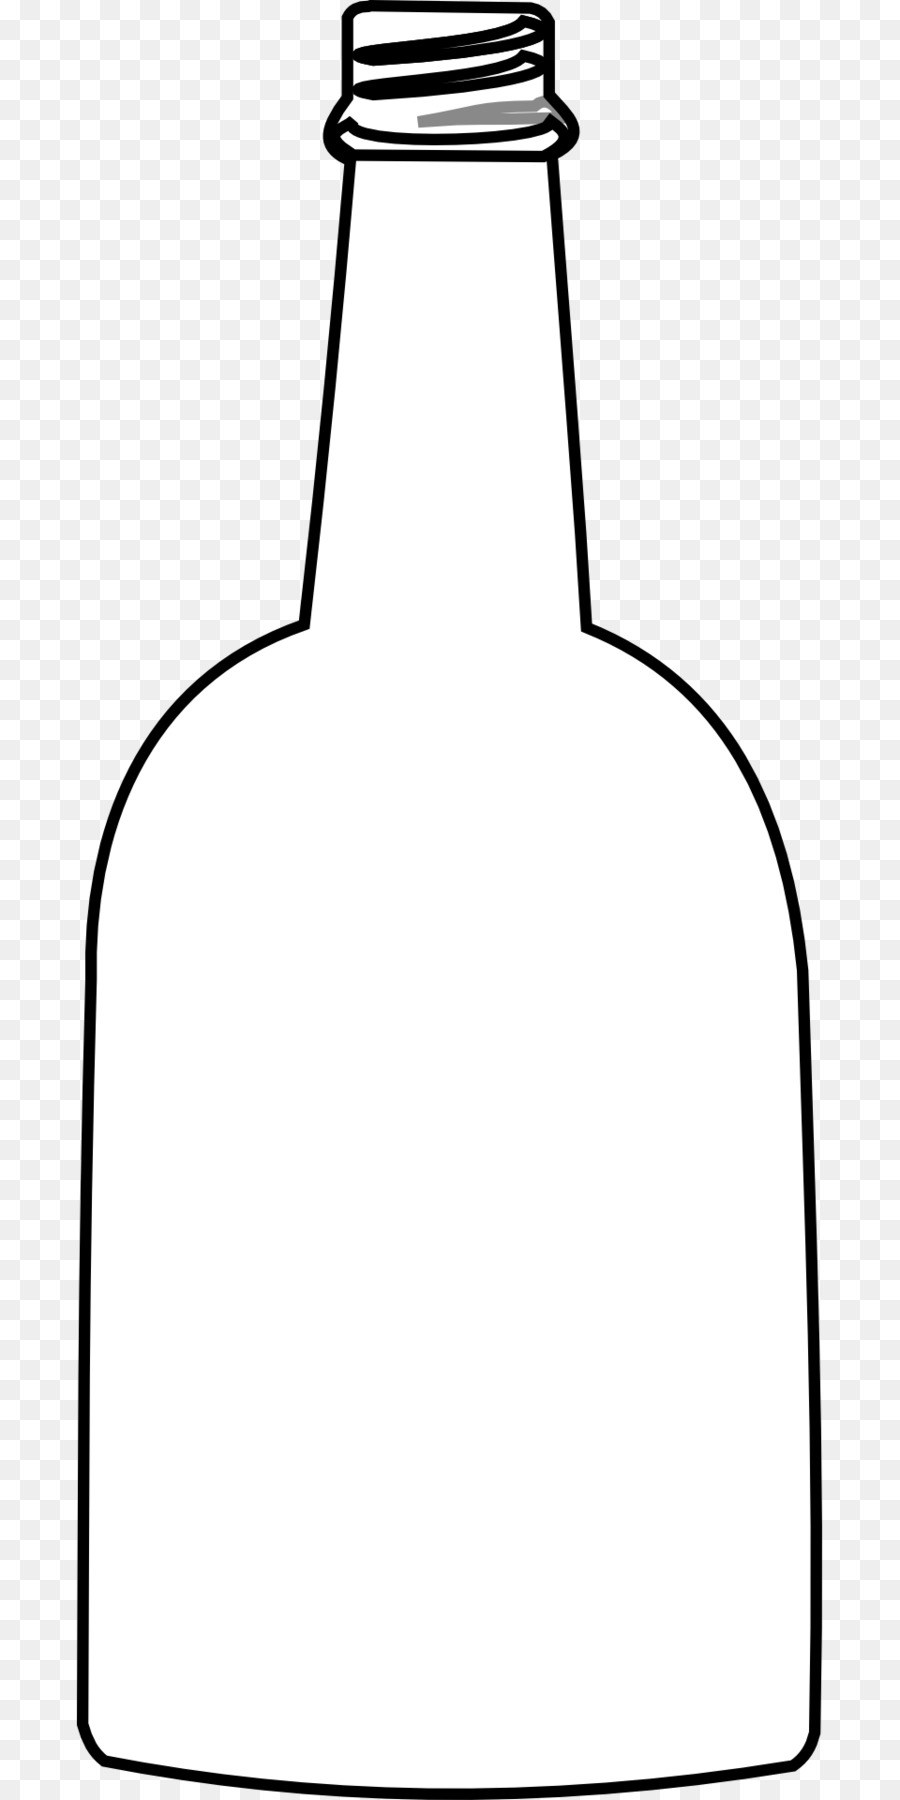 Empty bottle clipart black and white 4 » Clipart Portal.